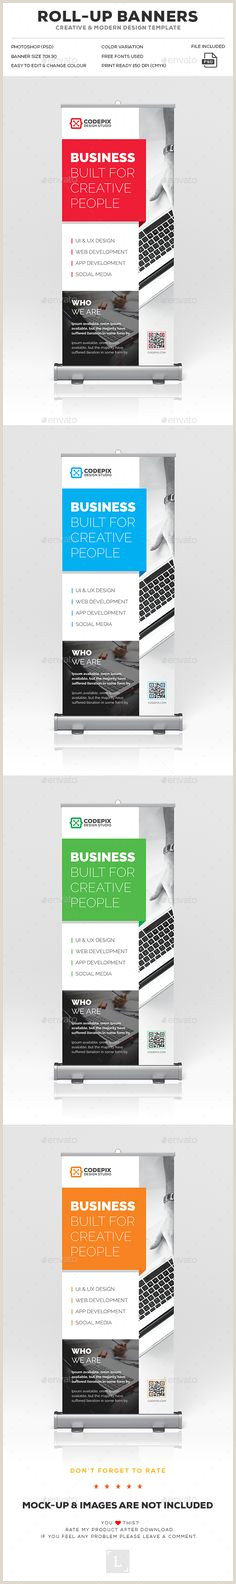 Retractable Scroll Banner 50 Best Roll Up Banners Images